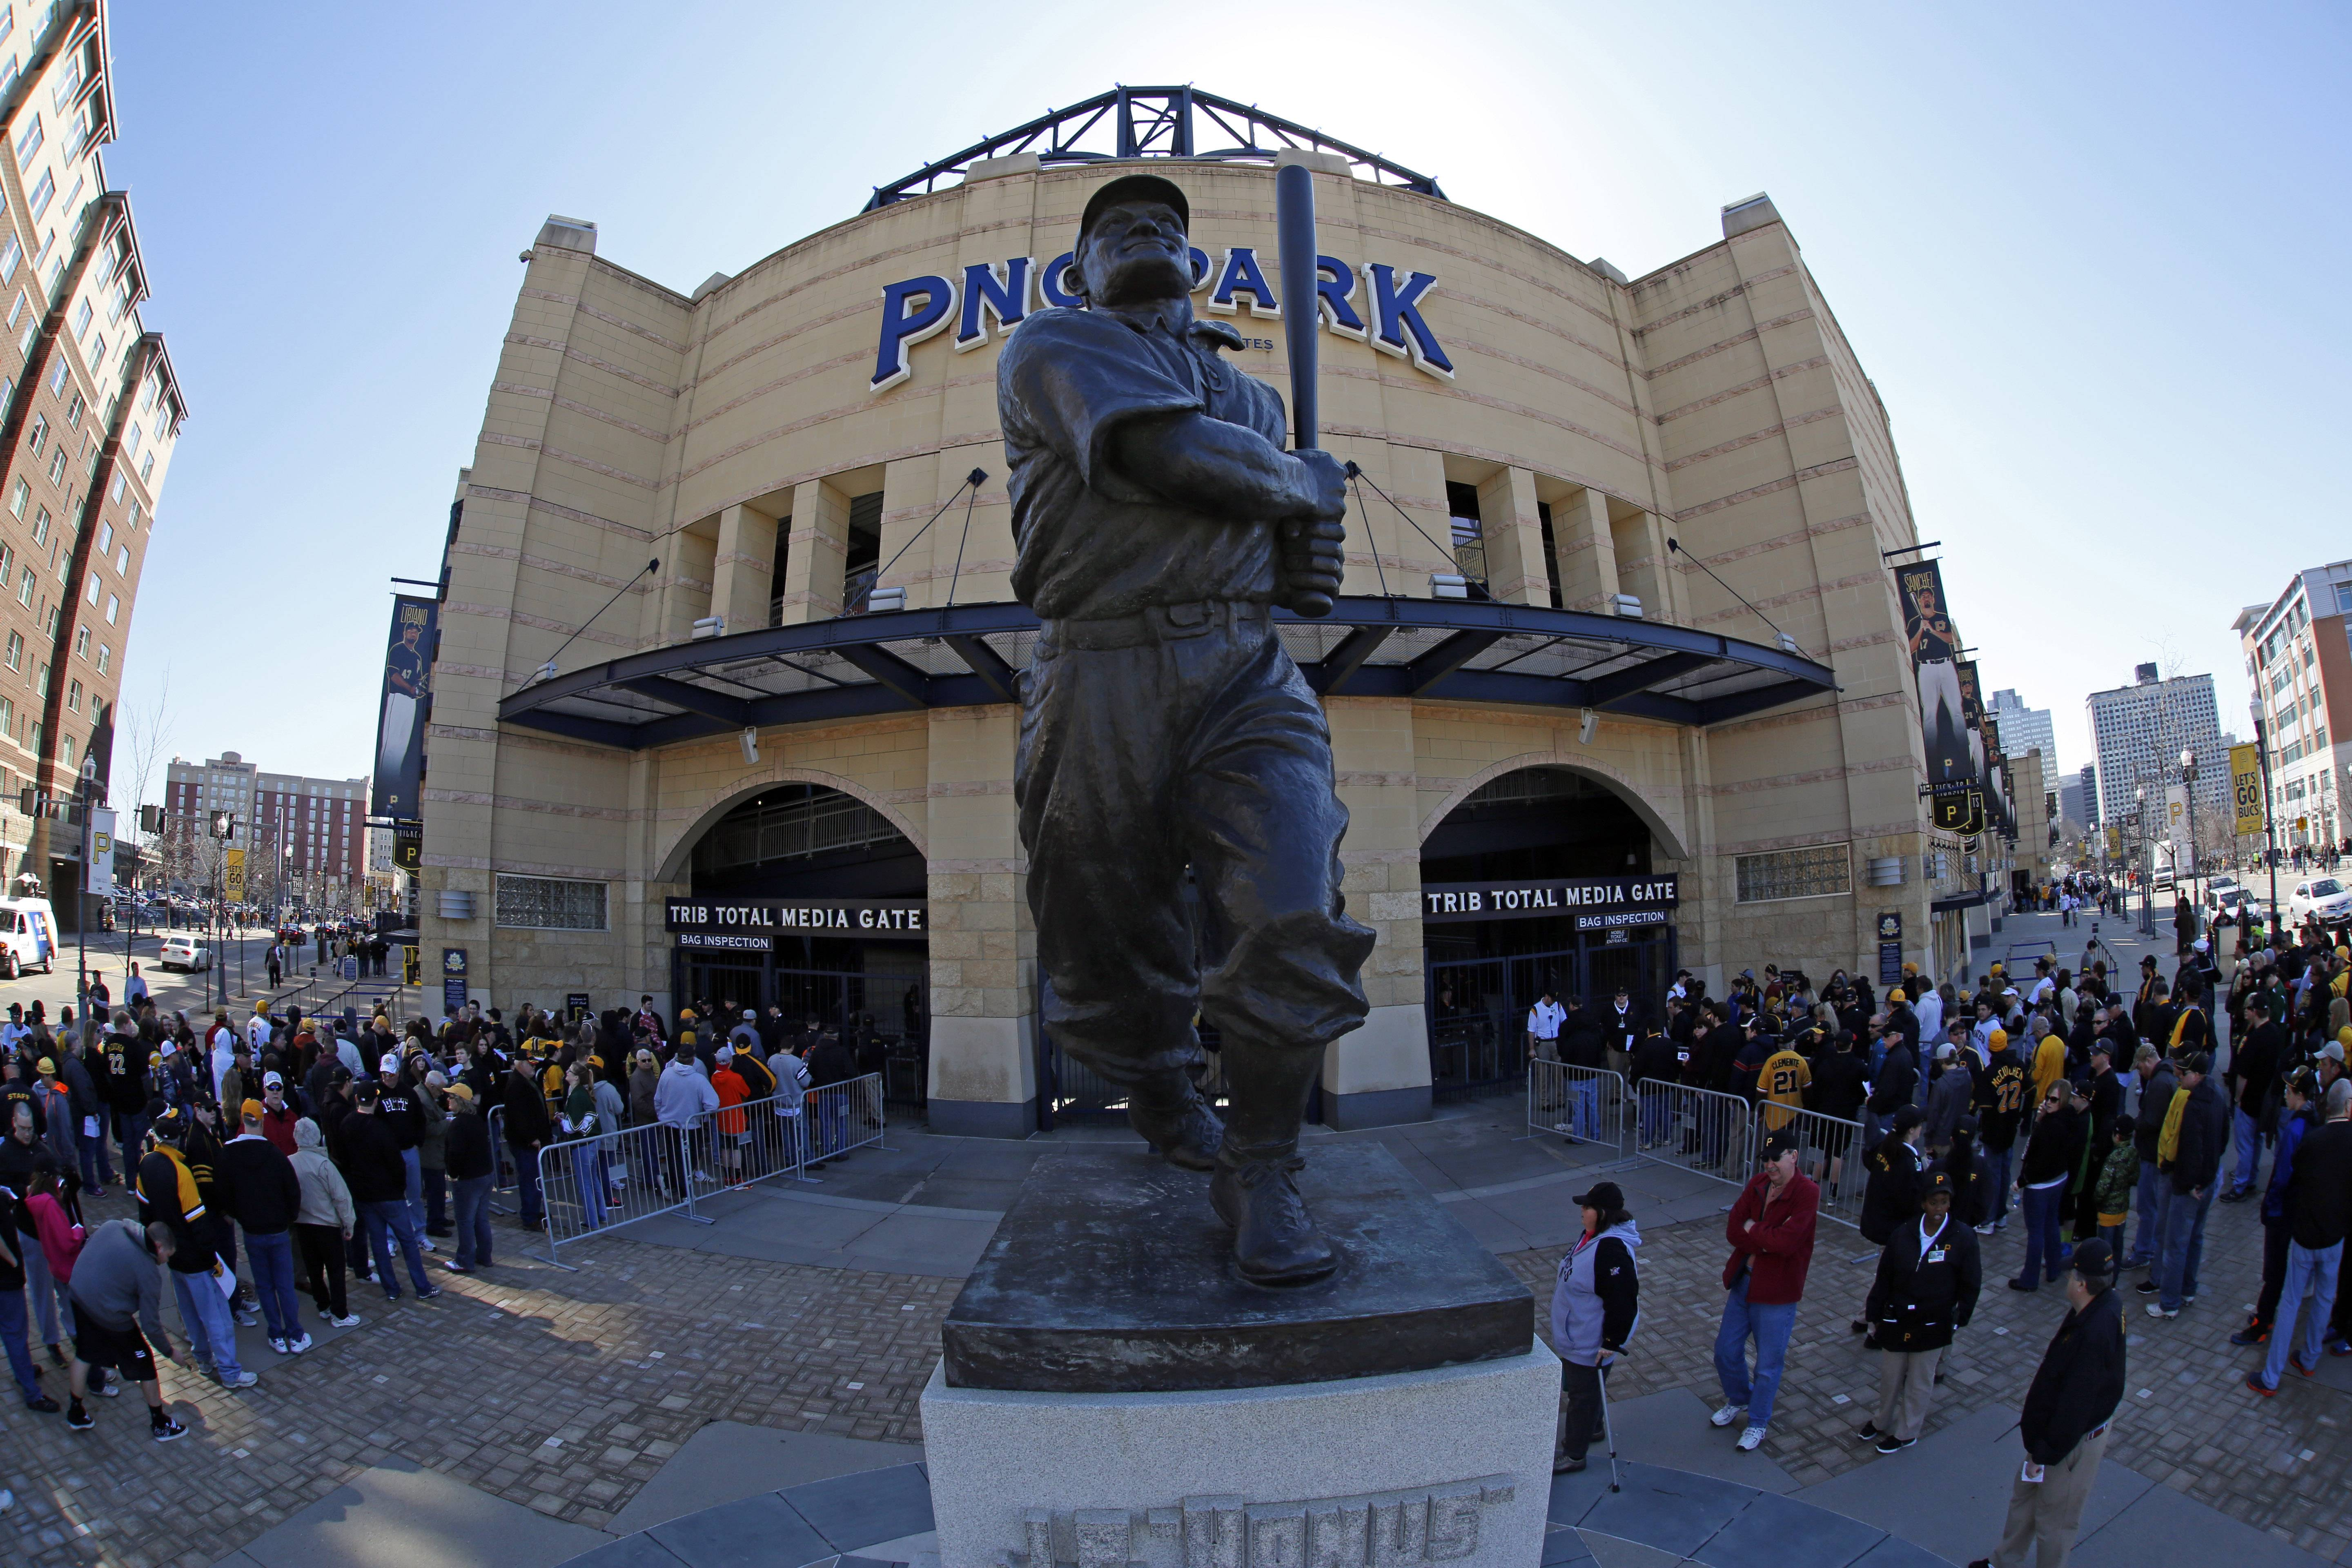 Baseball fans line up outside PNC Park near the statue of Hall of Fame Pittsburgh Pirates shortstop Honus Wagner.